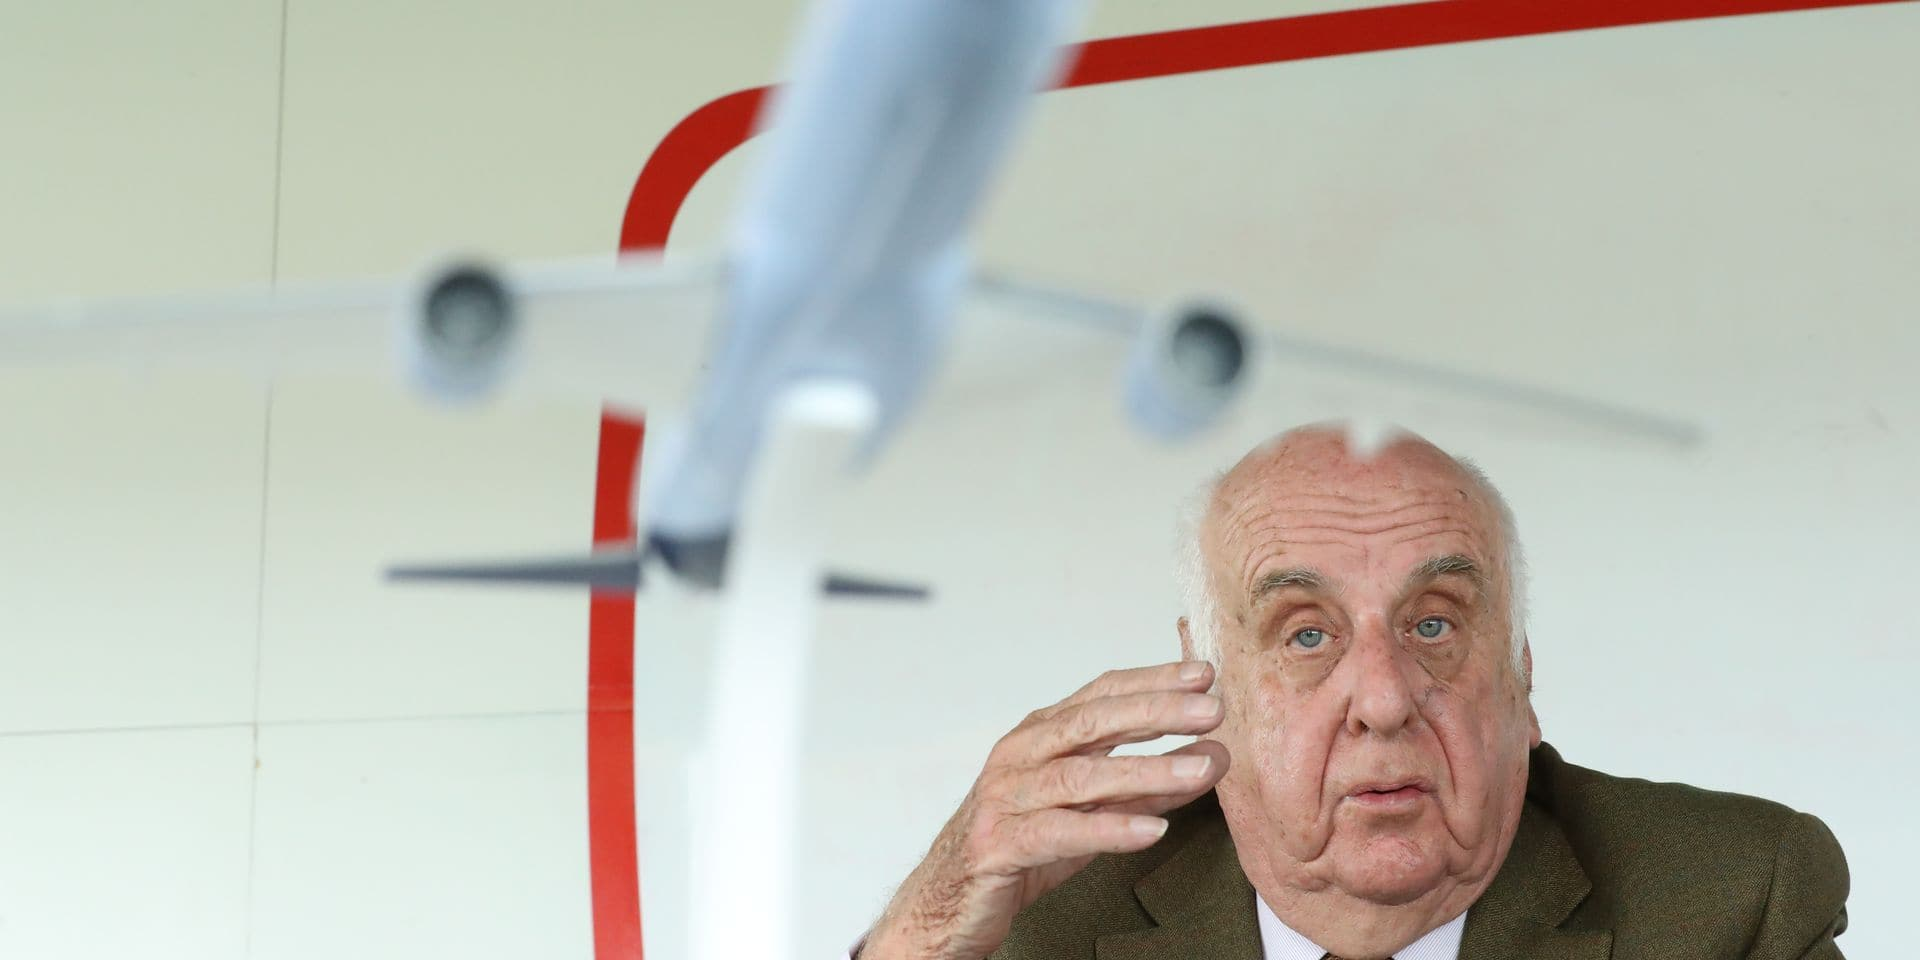 SN Airholding chairman Viscount Etienne Davignon pictured during a press conference of Brussels Airlines on the strike of the pilots announced for Monday, Friday 11 May 2018 in Diegem, Machelen. BELGA PHOTO BENOIT DOPPAGNE